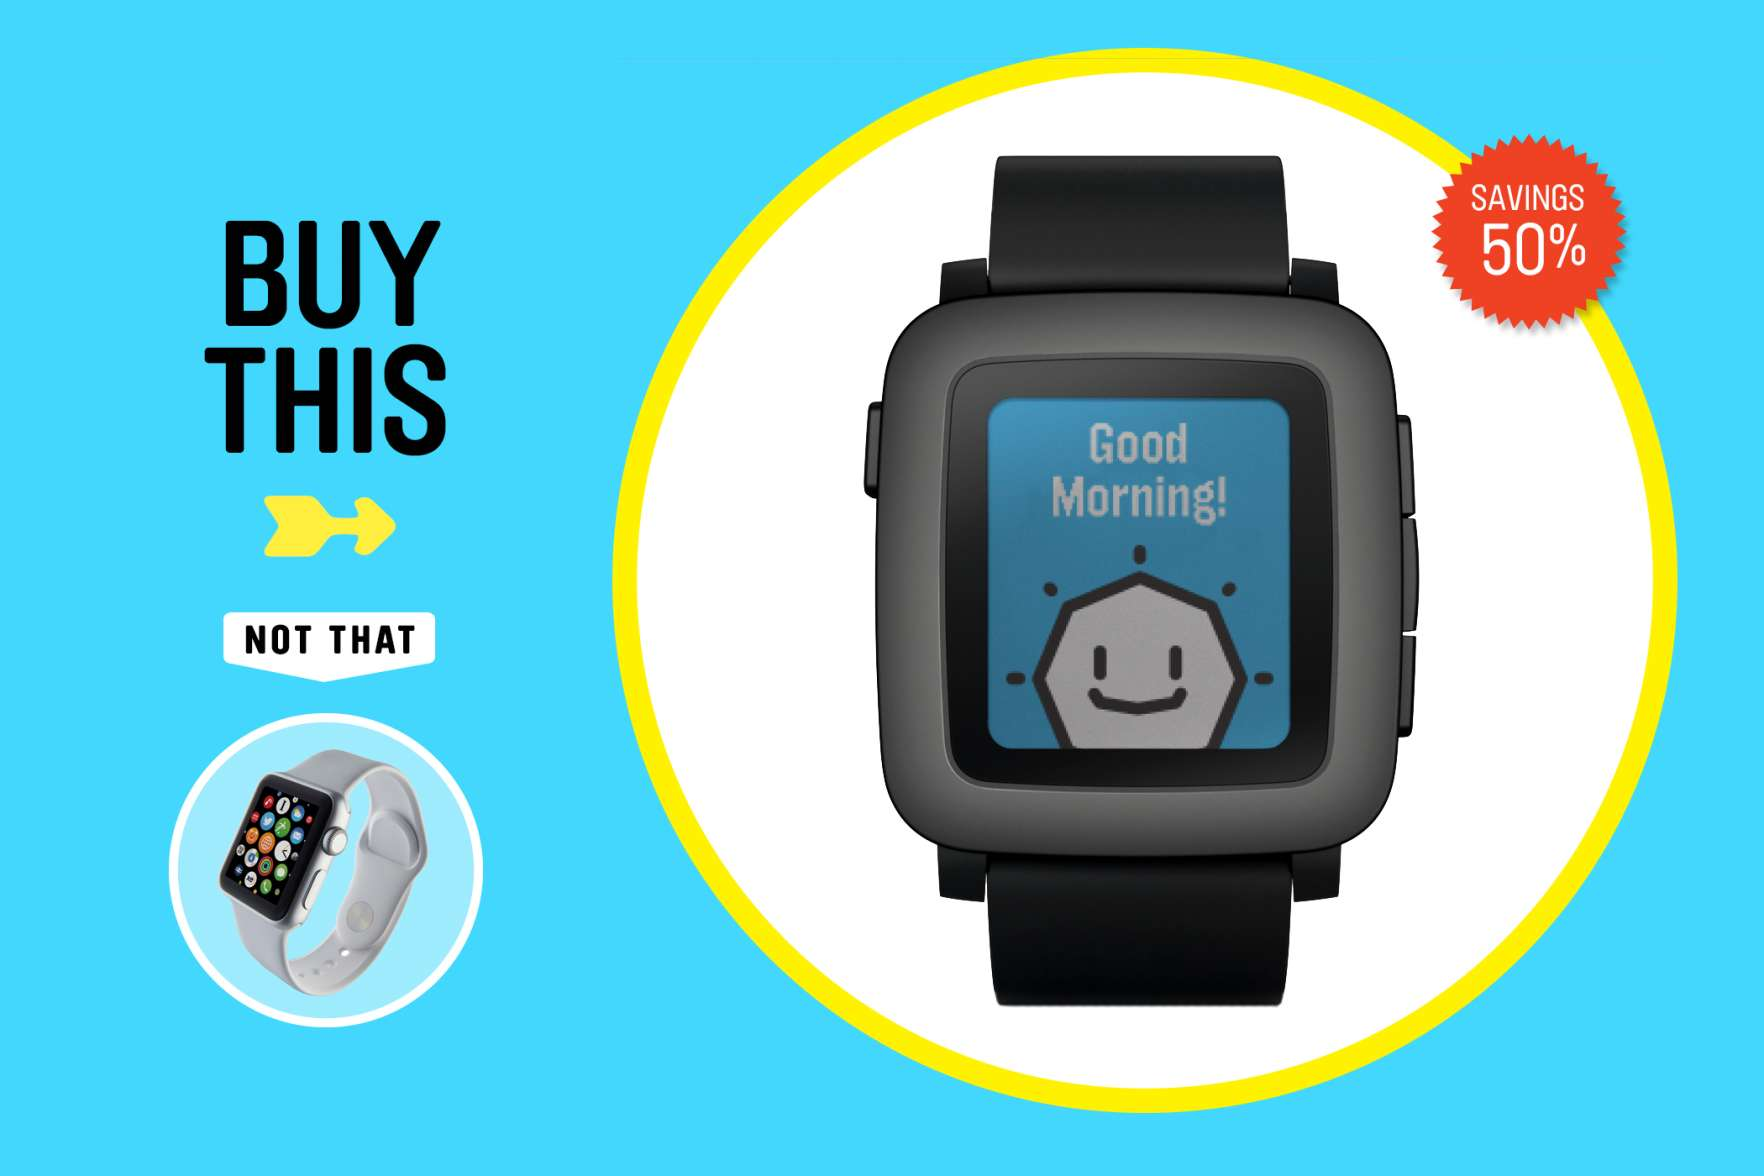 A good smartwatch tells time (natch) and notifies you about important calls, messages, and appointments. Everything else: fluff. The Pebble Time ($150) for Android and iPhone features an always-on screen that requires charging only once per week. The Apple Watch Sport ($299) does more, but it requires daily charging and works only with iPhones.